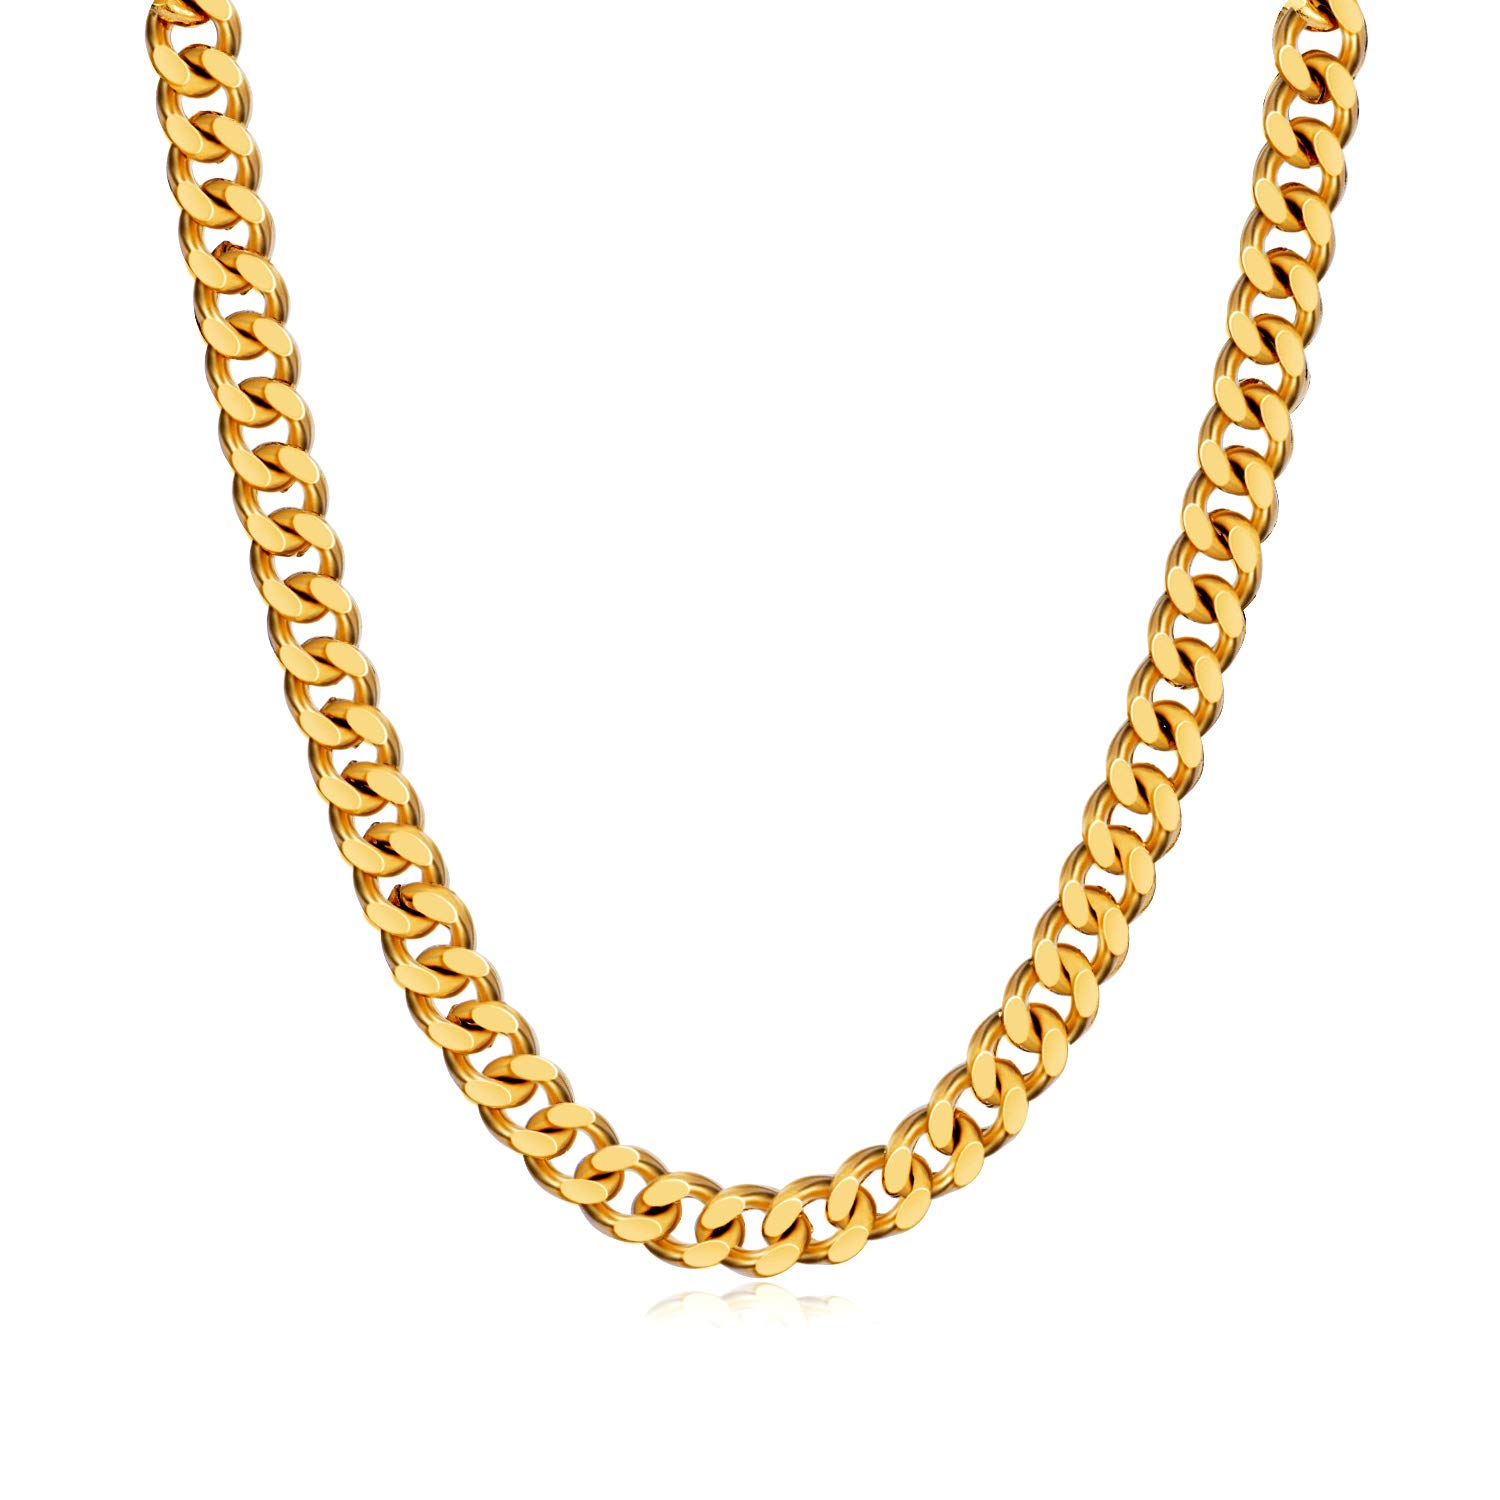 0a6576d3d71df WINNICACA Italy Cuban Hip Hop Fake Gold Chains 24k Gold Plated Chain Link  Necklaces20/22/24/26/28'',5/6/8mm Wide Fashion Jewelry Mens Gifts